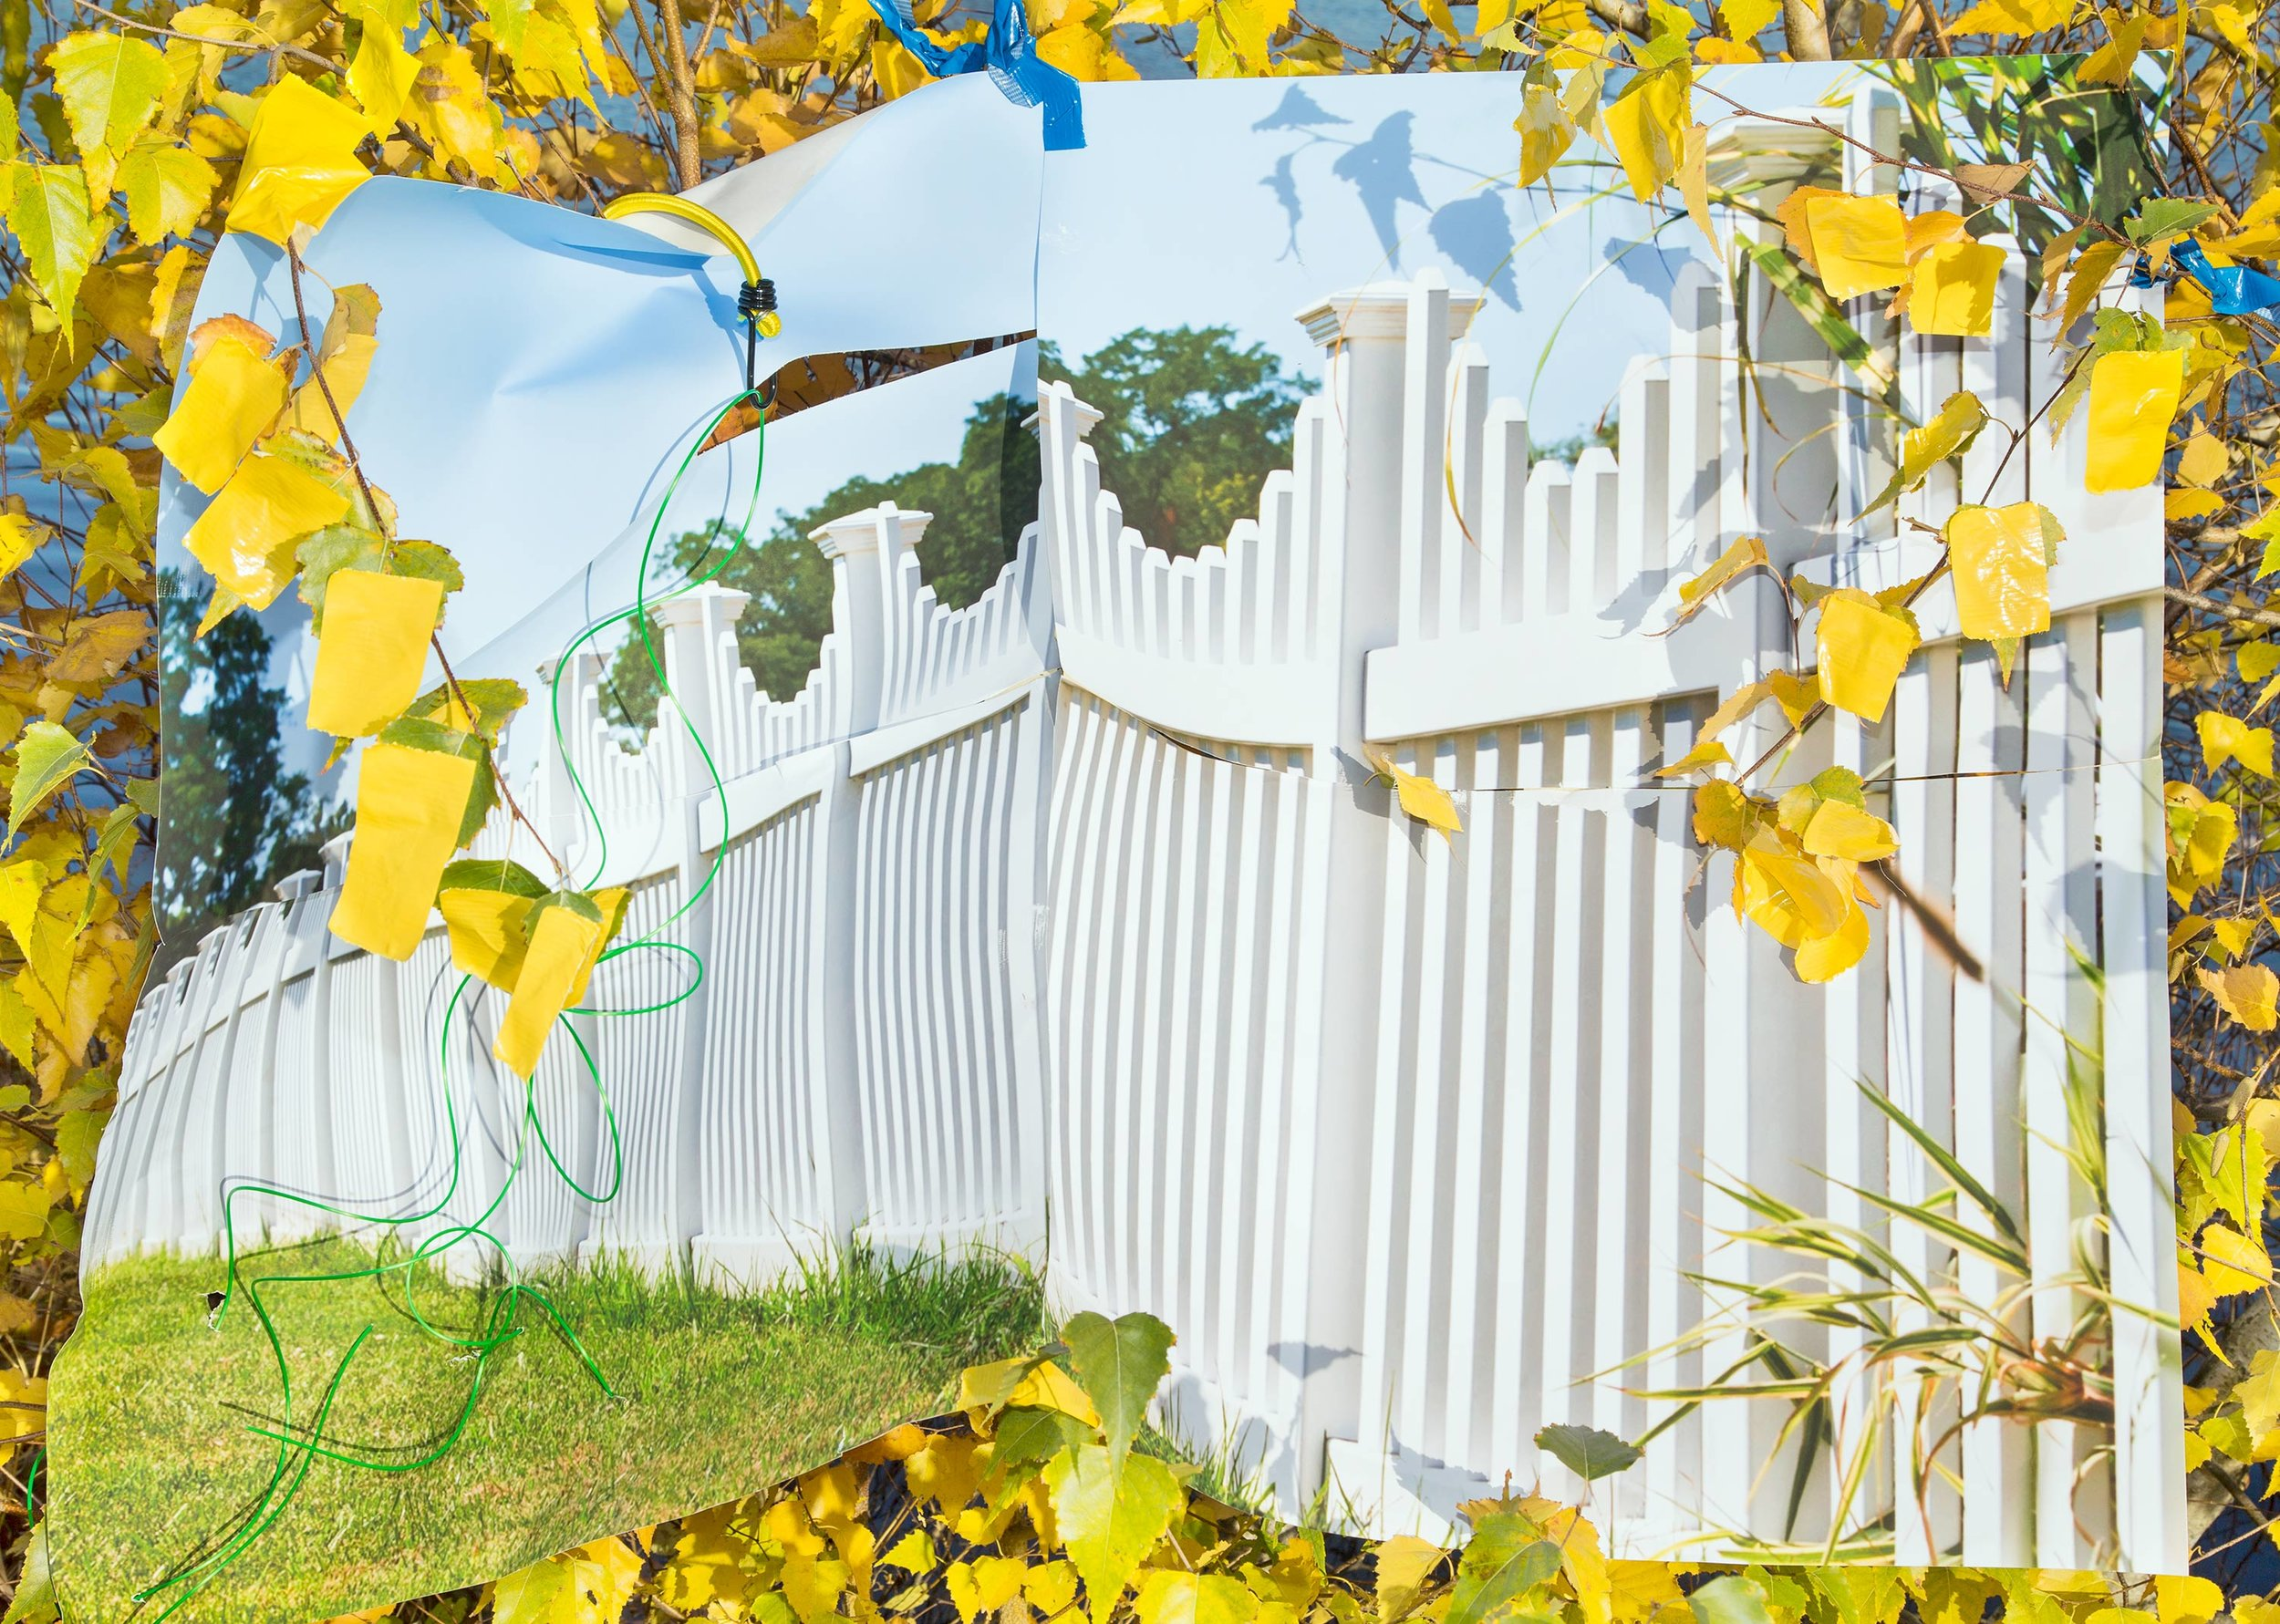 Fence Example #2